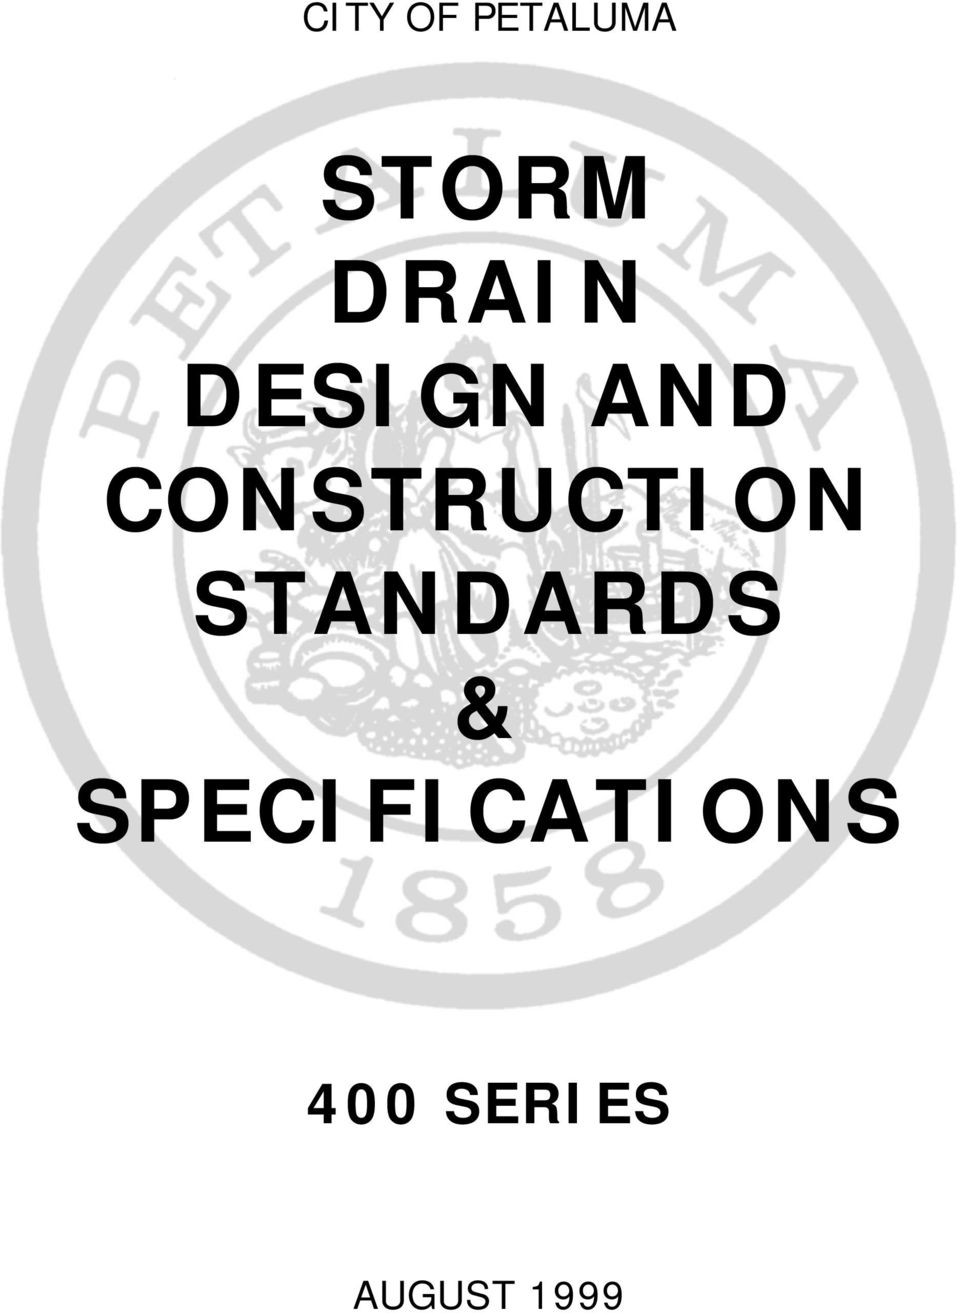 CONSTRUCTION STANDARDS &